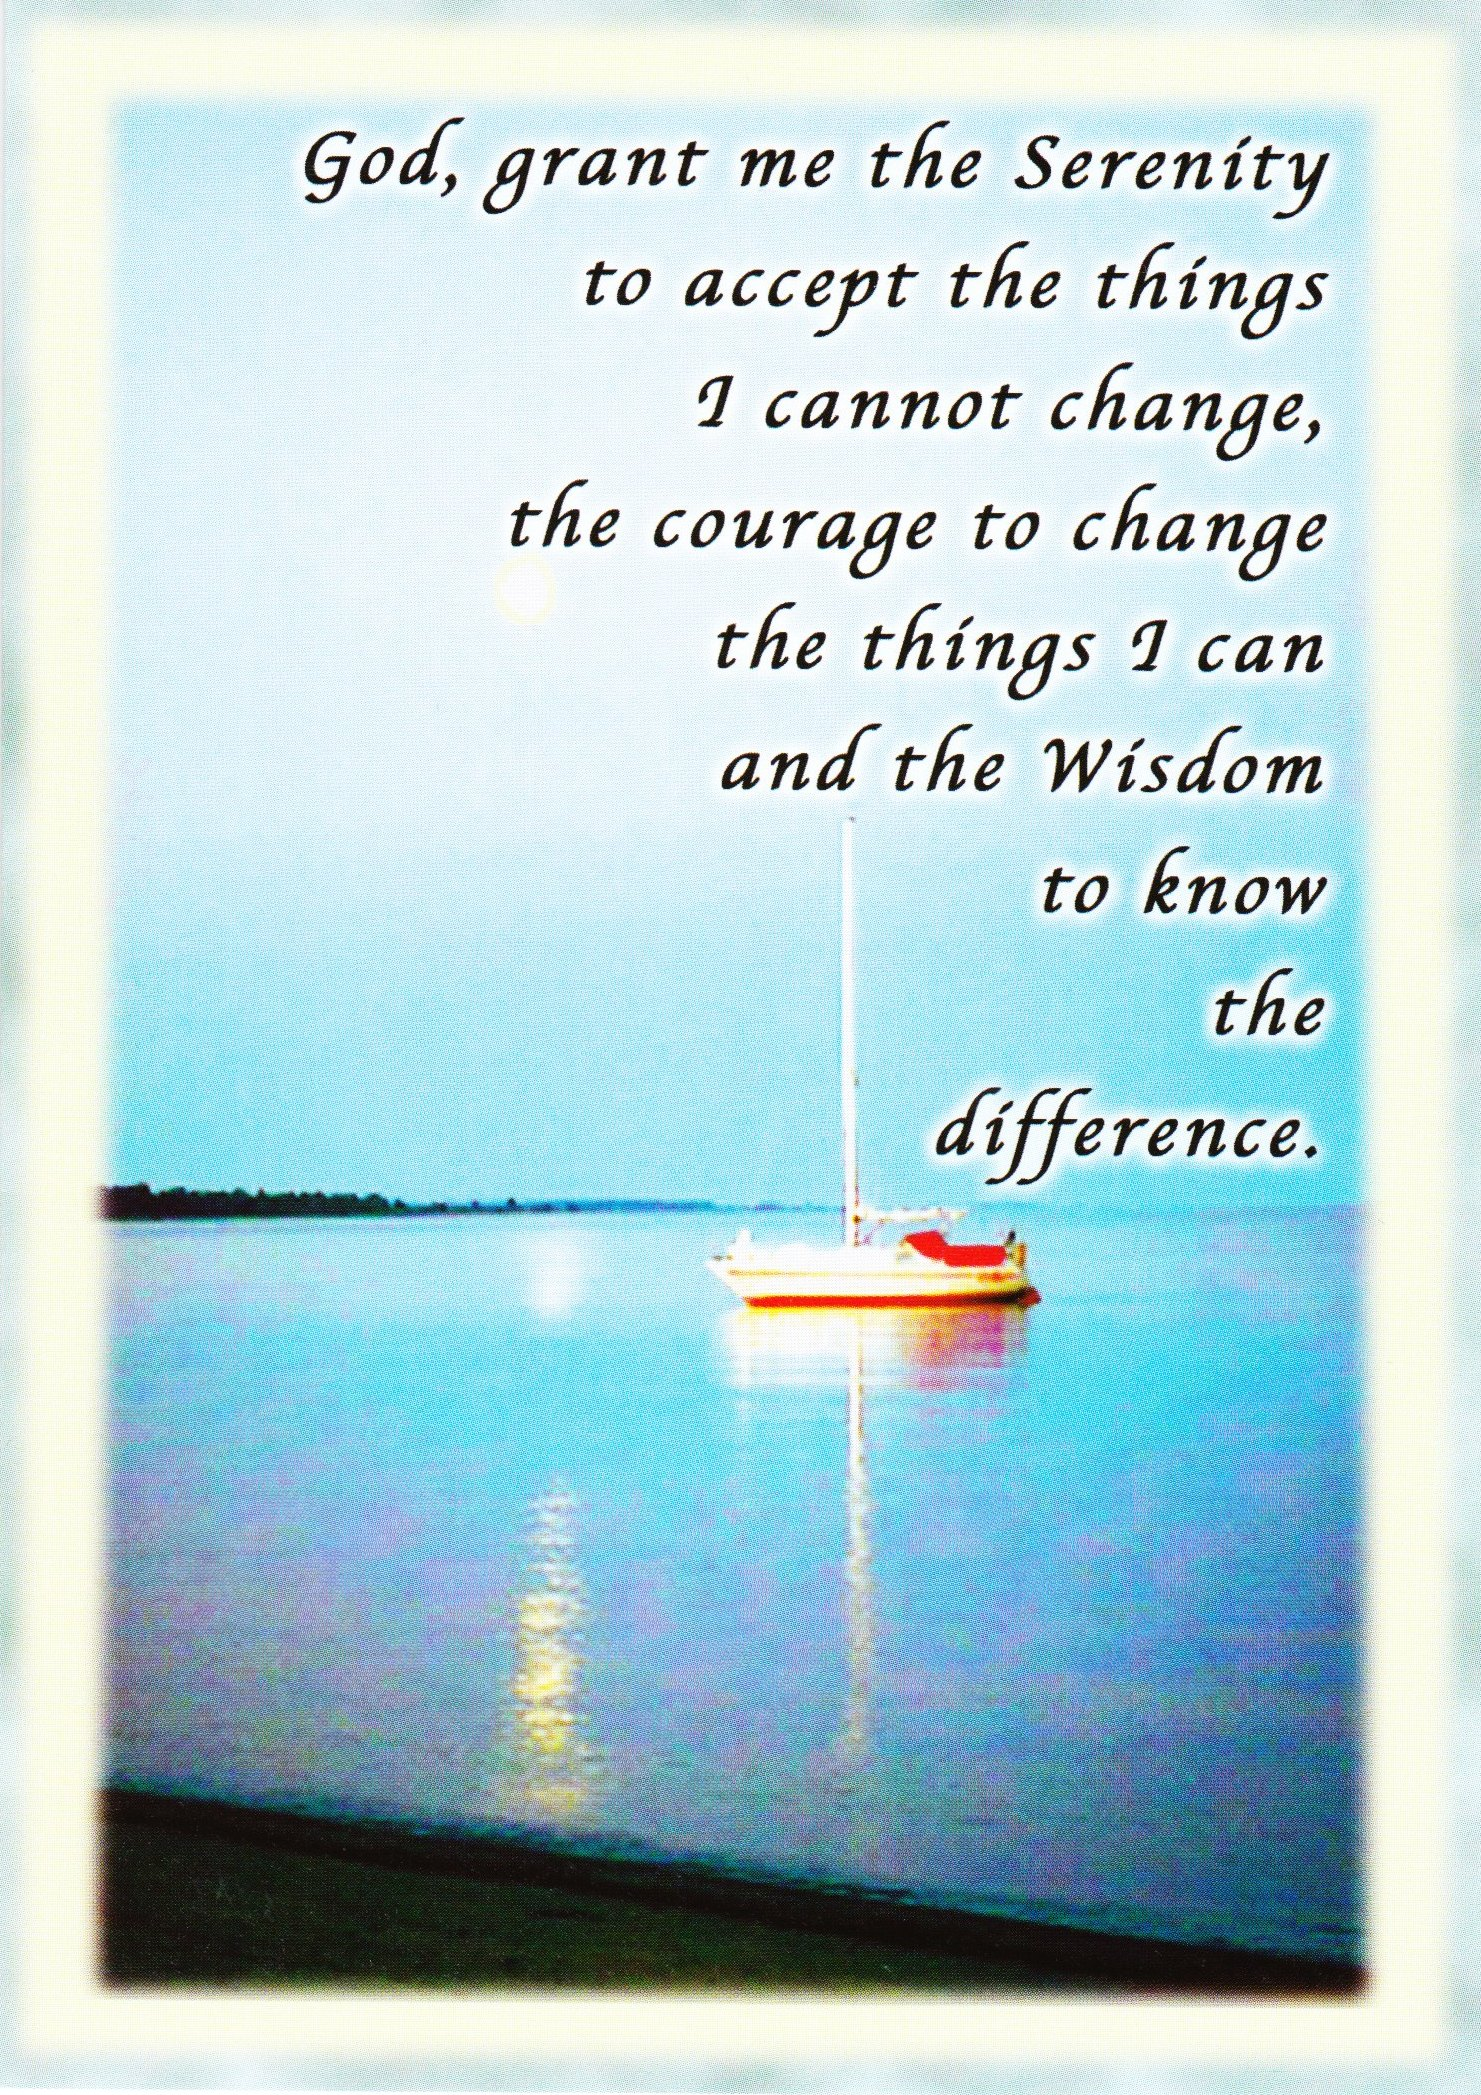 Serenity Prayer Card 3